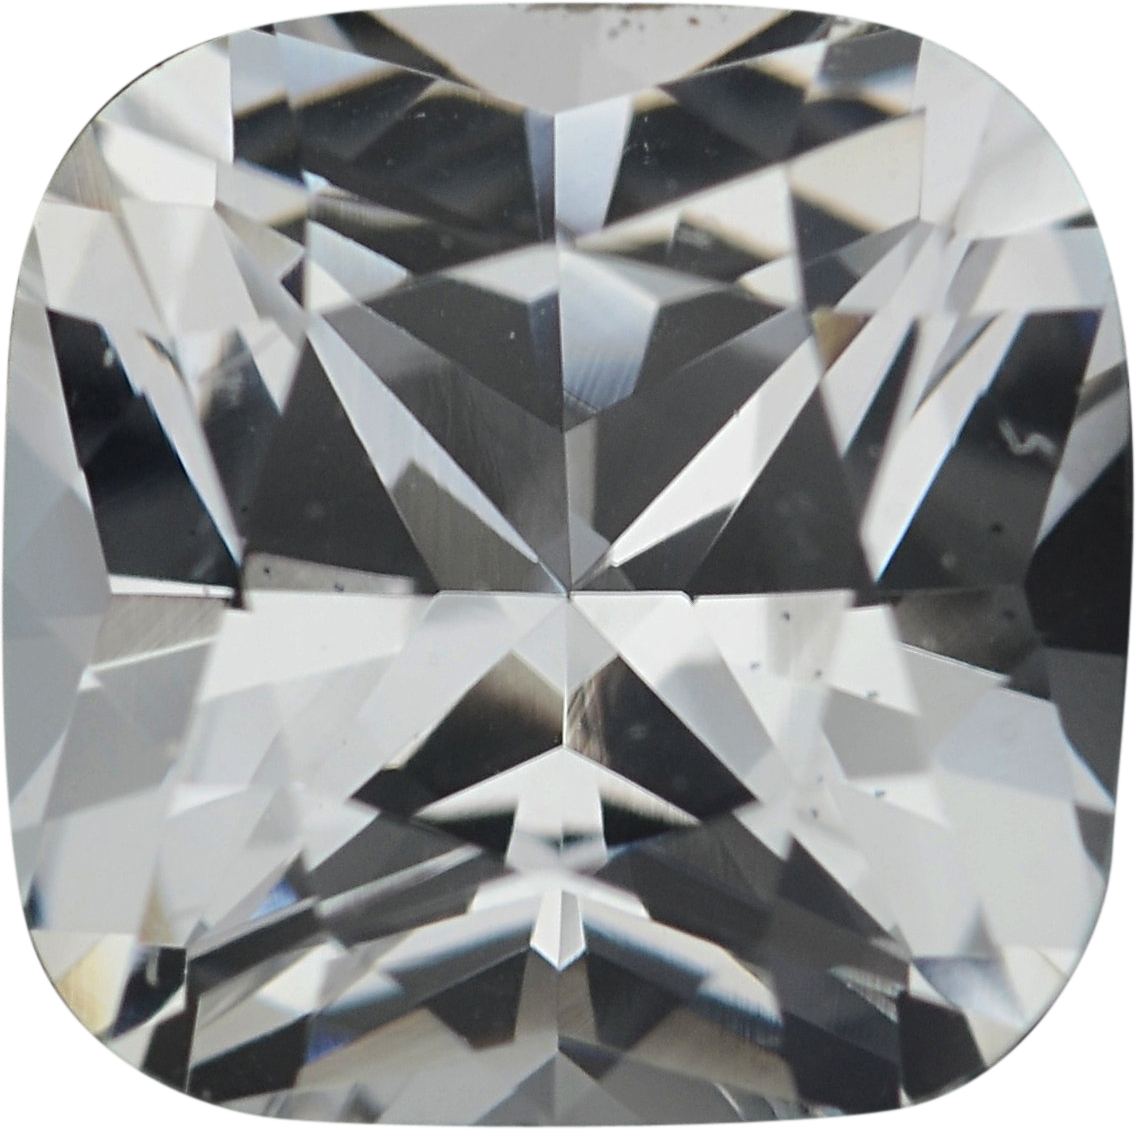 5.53 x 5.51 mm, White Loose Sapphire Gemstone in Antique Square Cut, Near Colorless, 0.93 carats